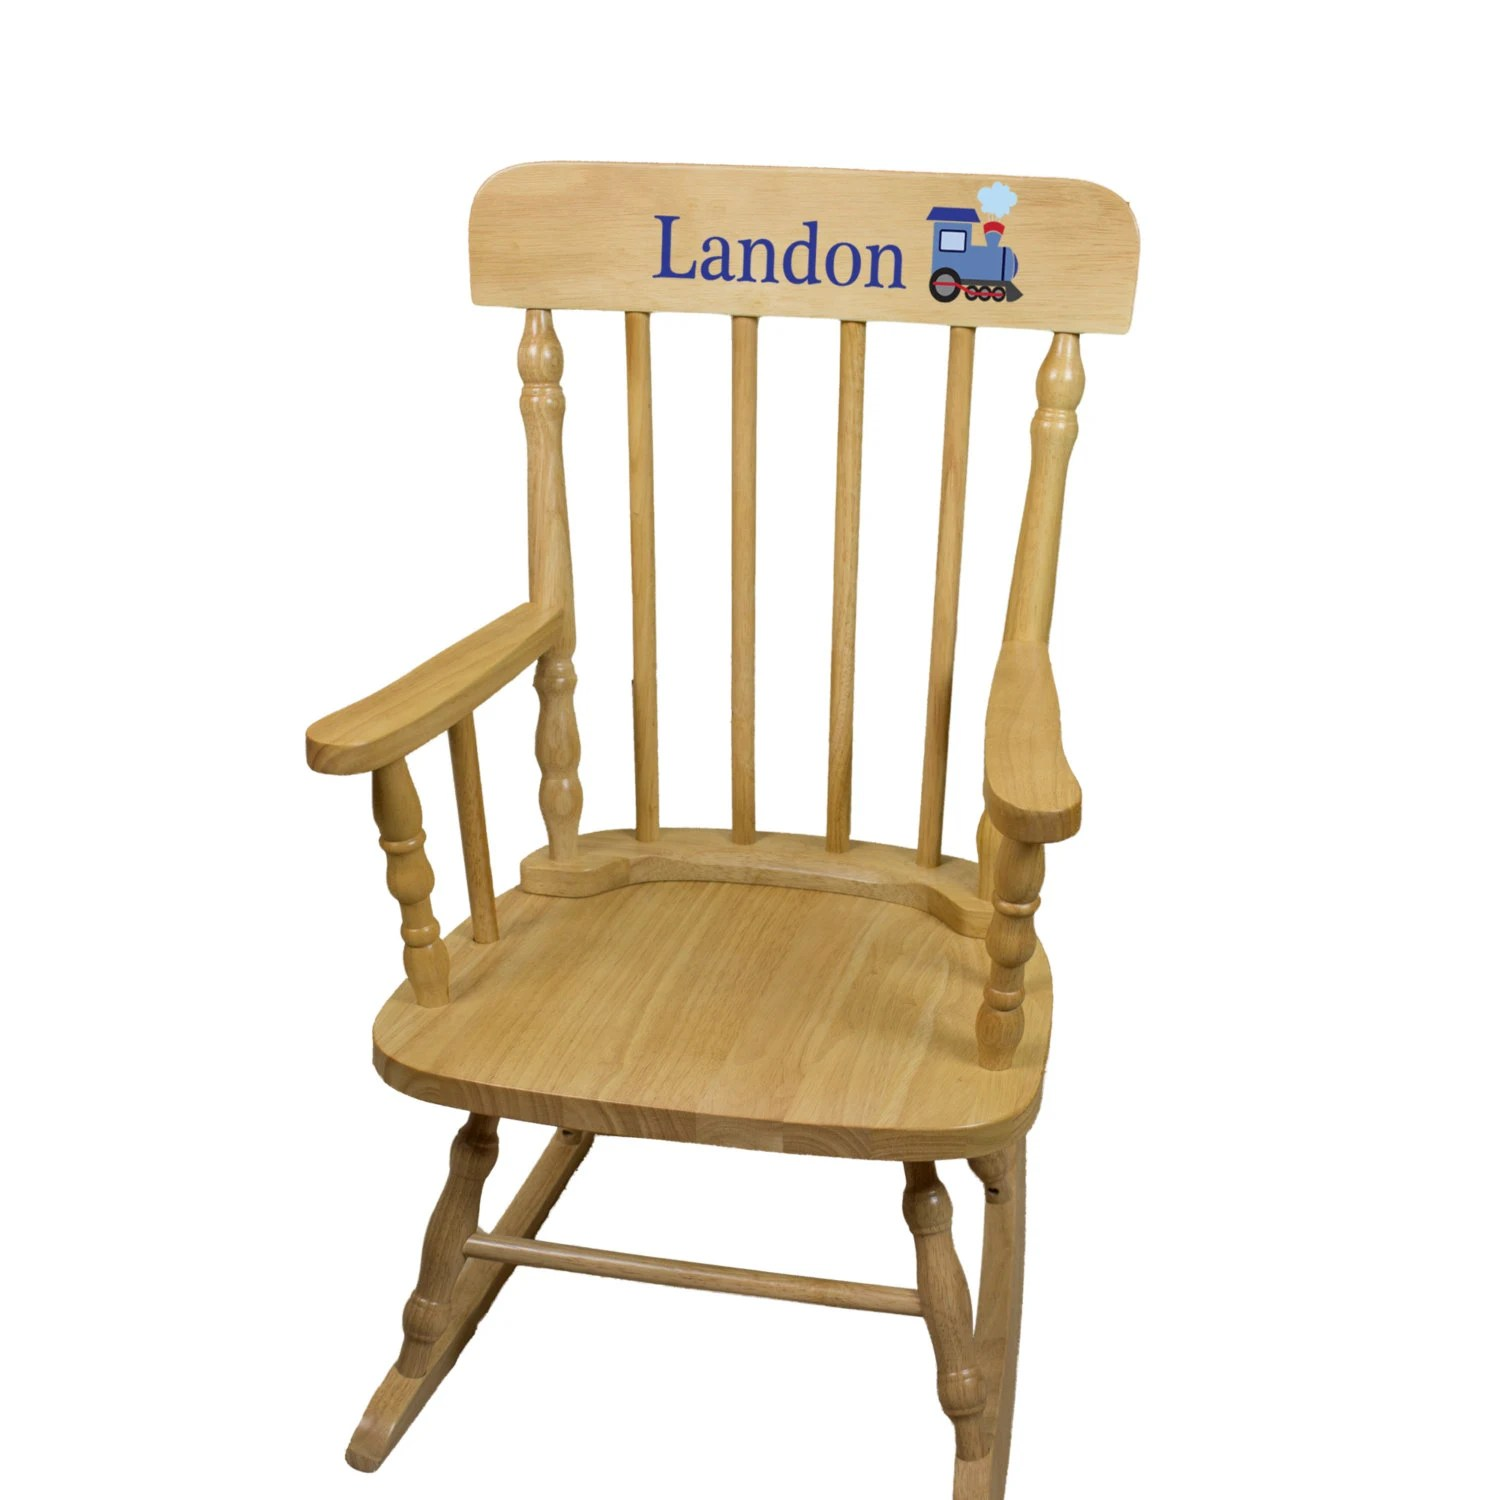 Nursery Wooden Rocking Chair Personalized Wood Rocking Chair W Childs Name Nursery Furniture Toddler Baby Girl Boy Kids Custom Spindal Rocking Chairs Rocker Spin Nat